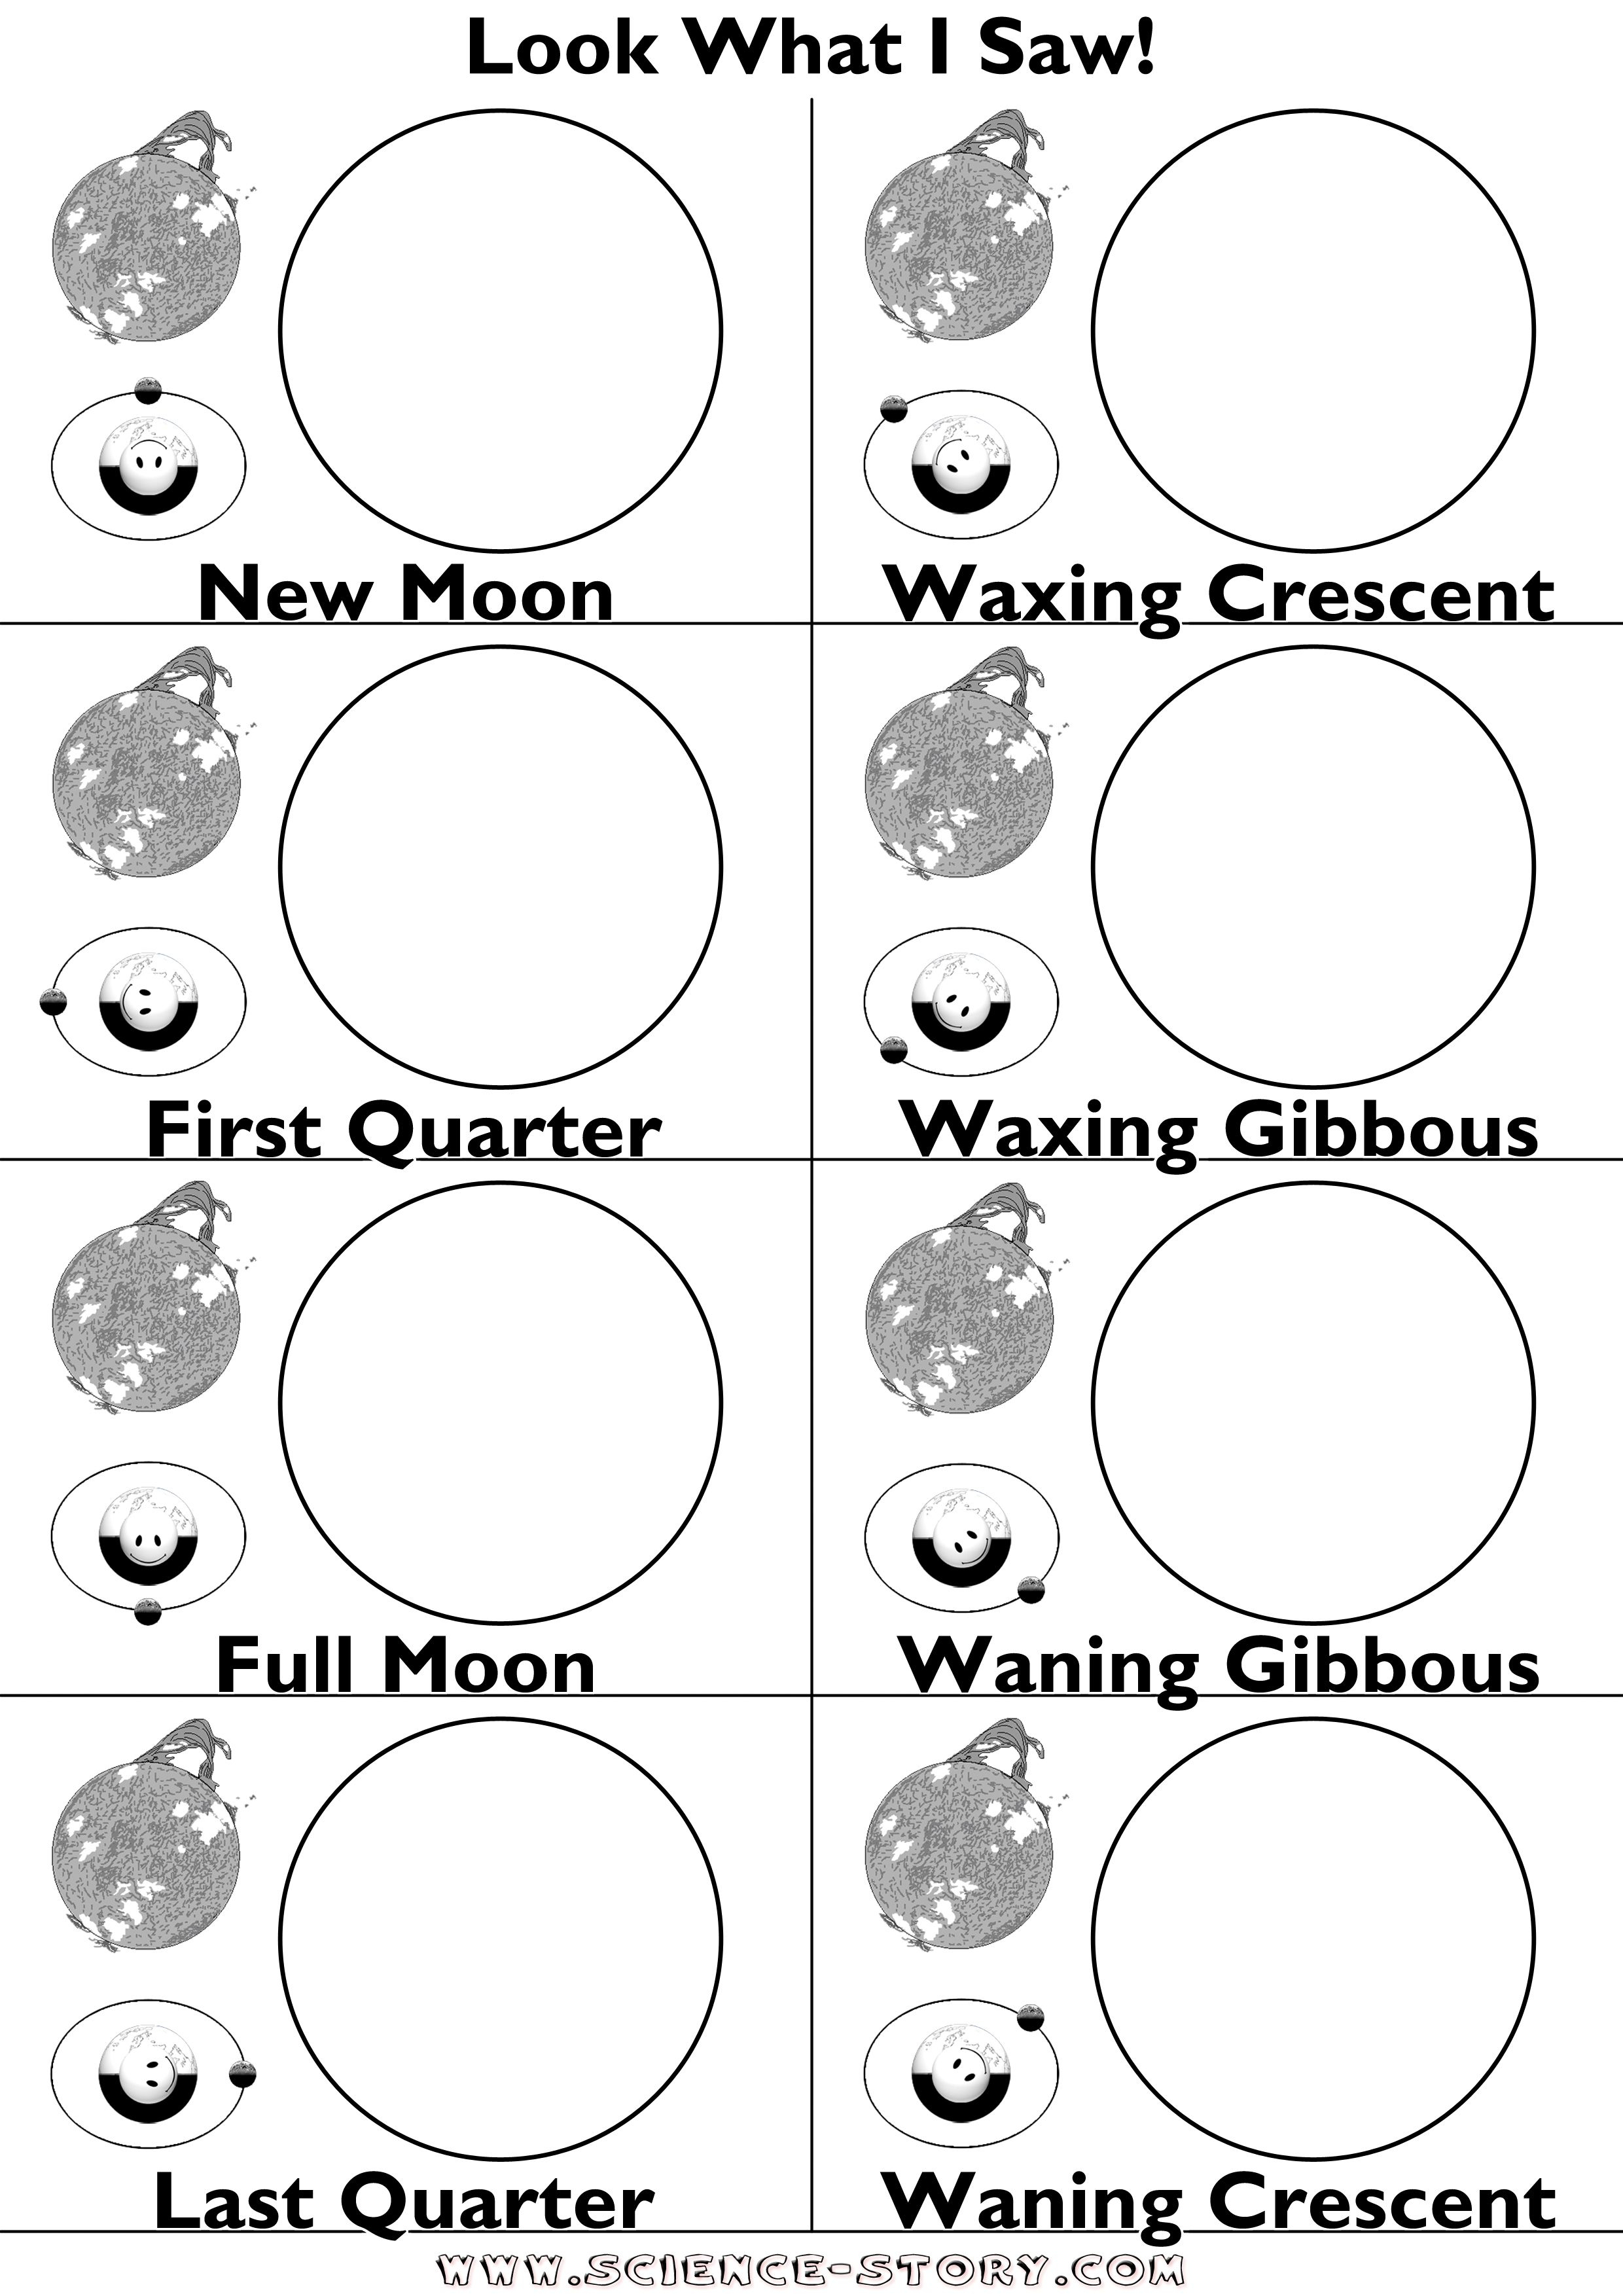 This Is A Worksheet To Show The Phases Of The Moon